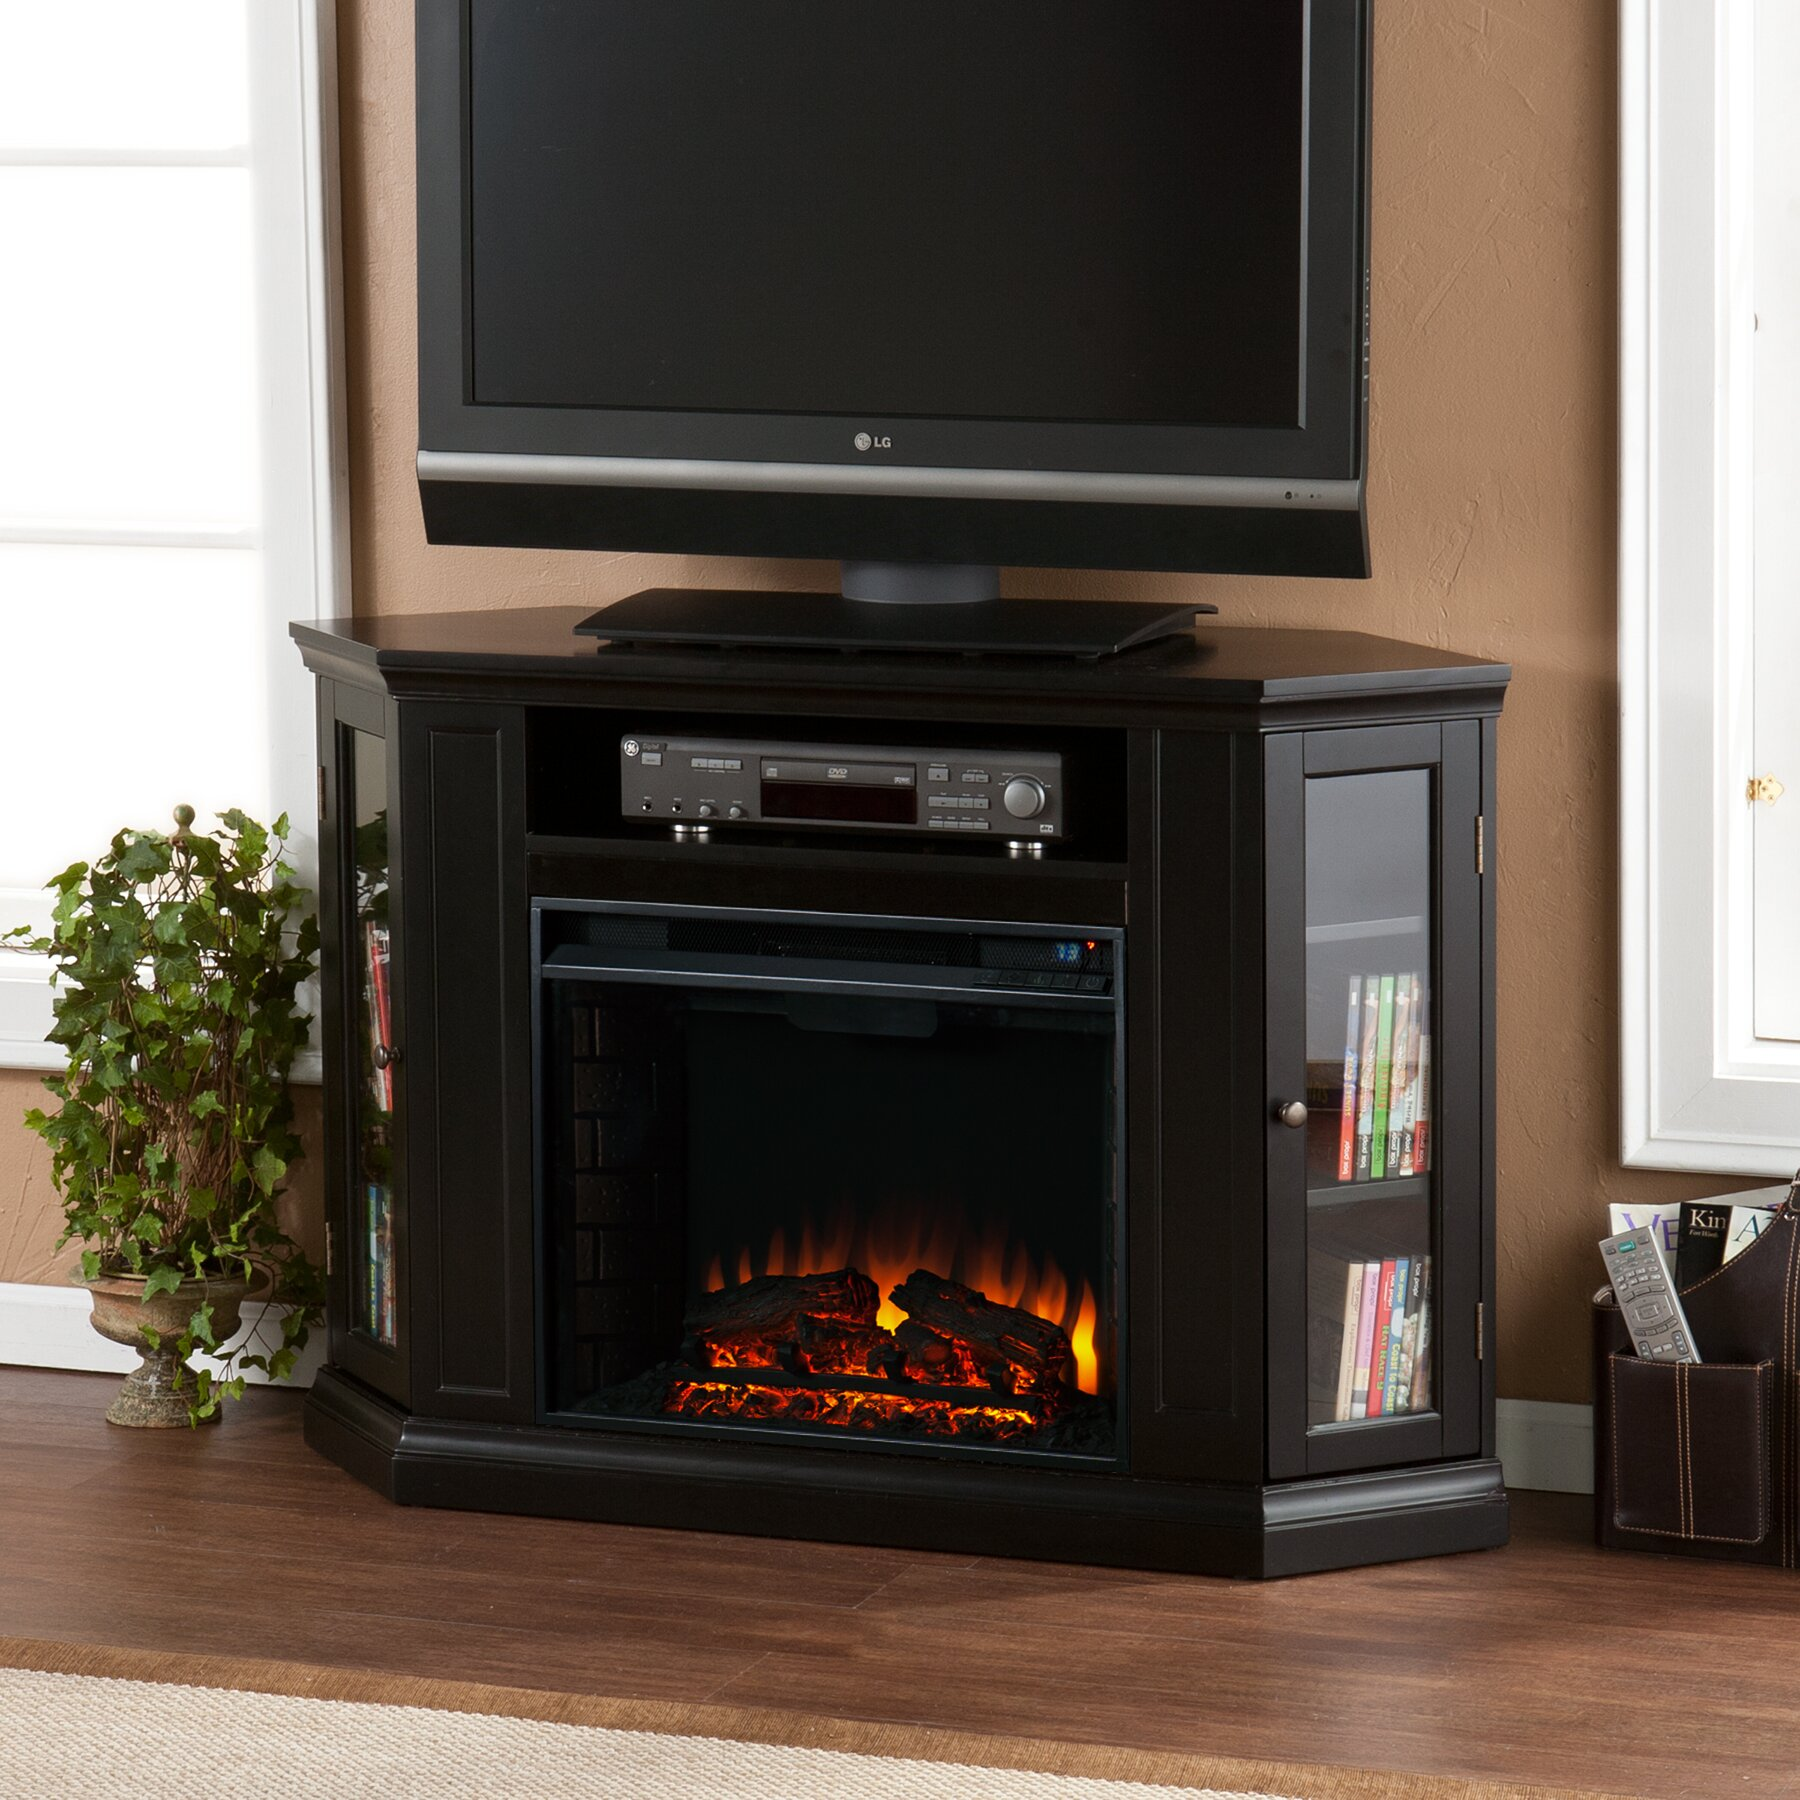 Alcott Hill Dunminning Corner Tv Stand With Electric Fireplace Reviews Wayfair